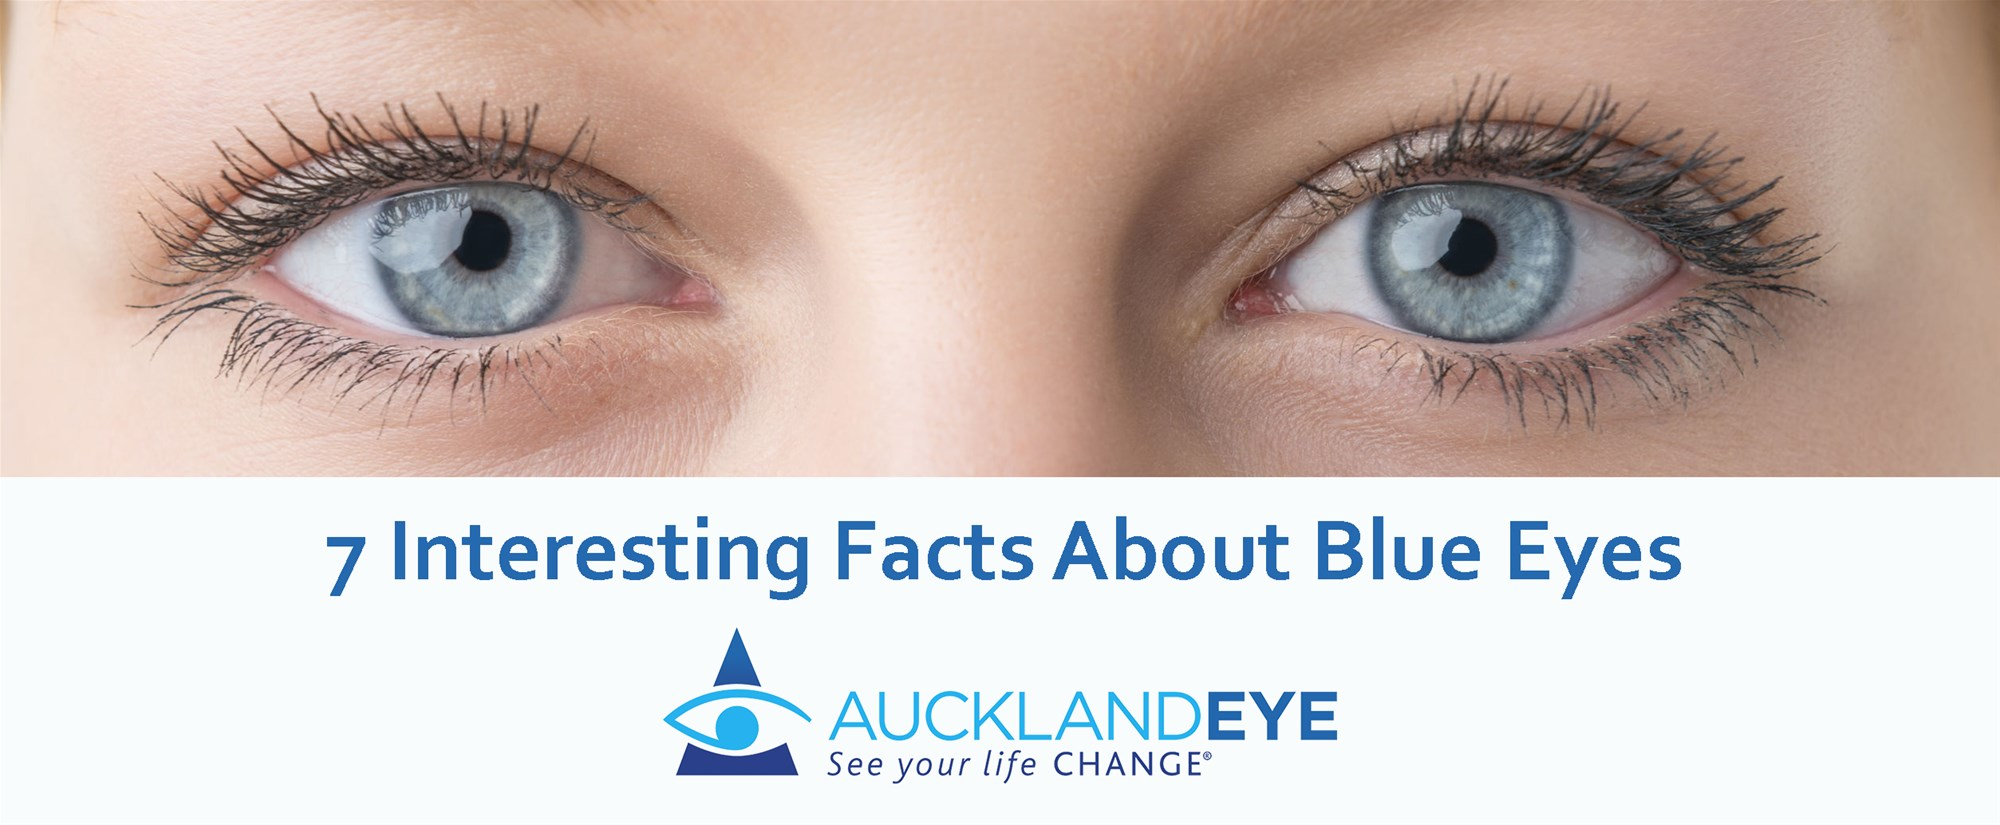 7 Interesting Facts About Blue Eyes